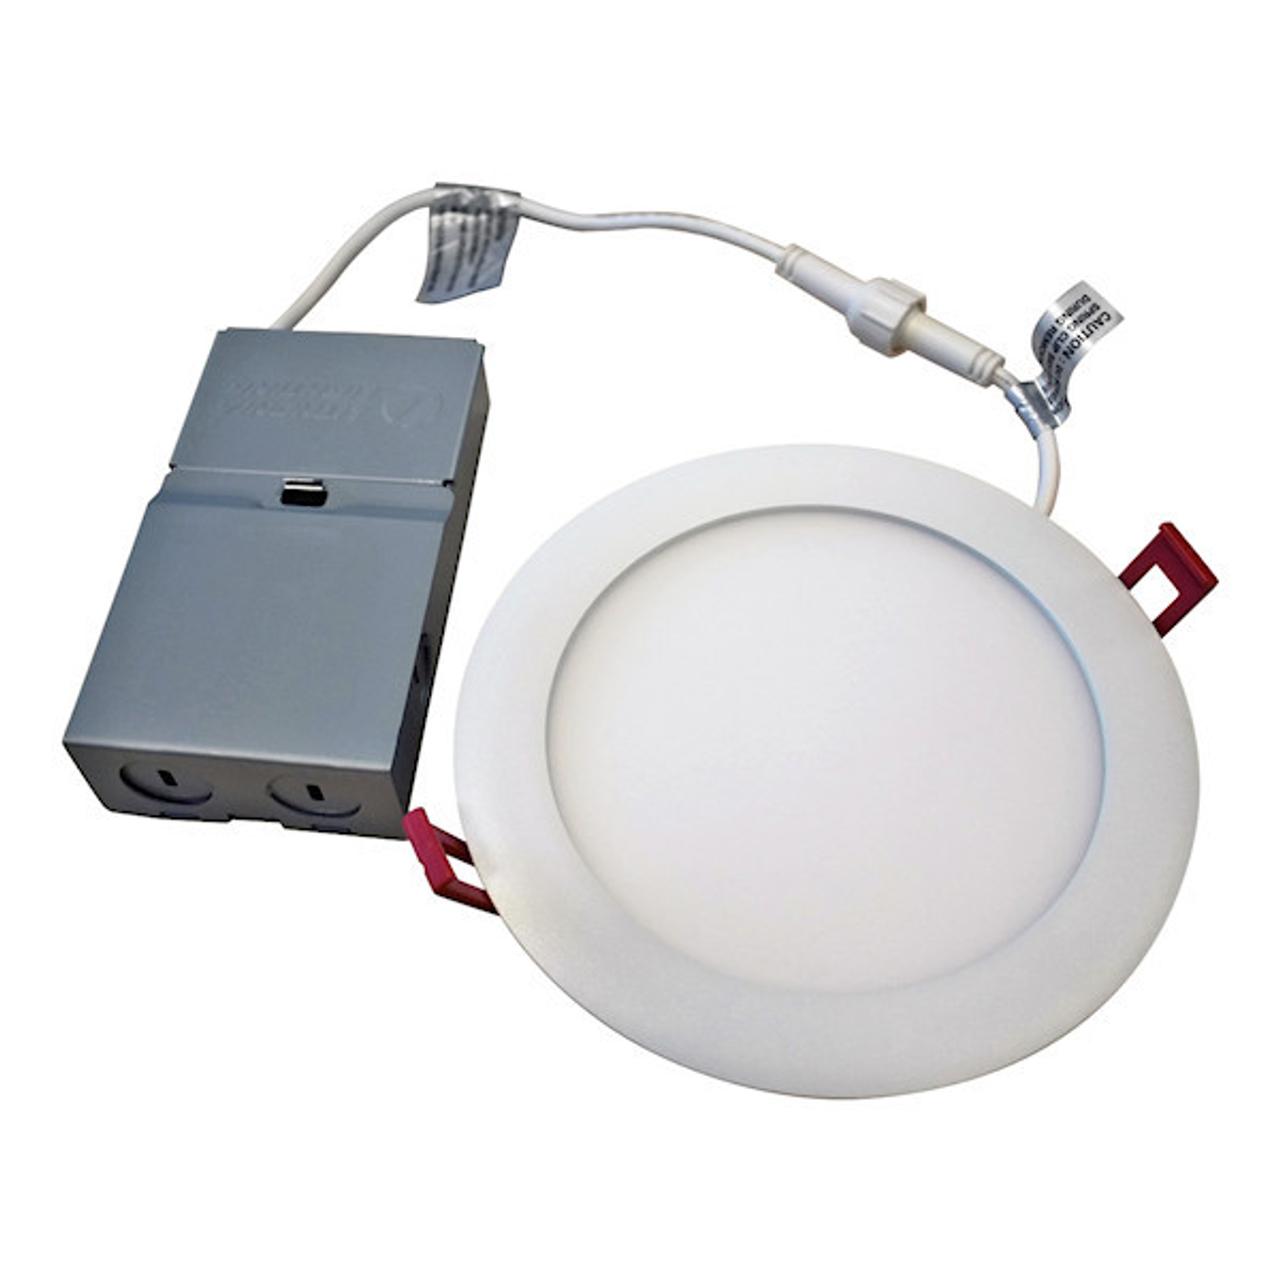 Lithonia Lighting MVOLT Wf6 Led 30K Molt Mw M6 Dimmable Recessed Ceiling Light 3000K White